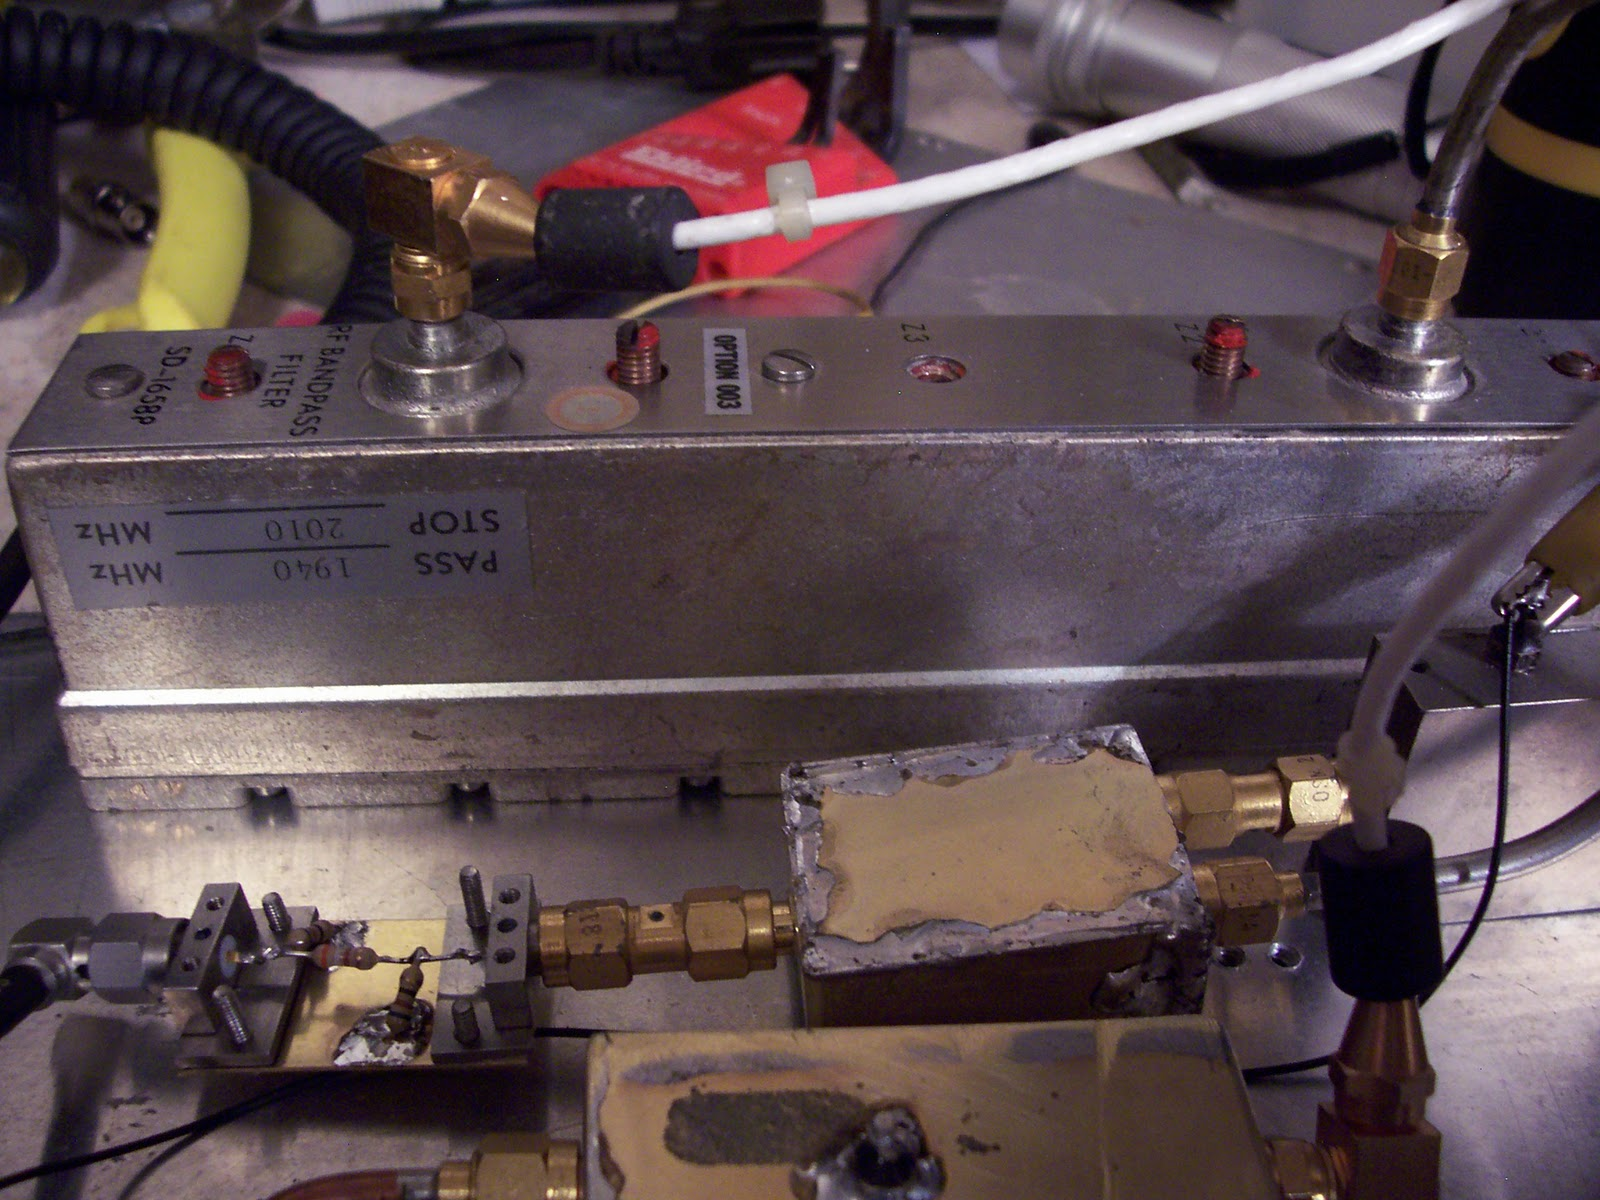 kd0ar's Ham Blog: 2304 MHz Transverter - Photos